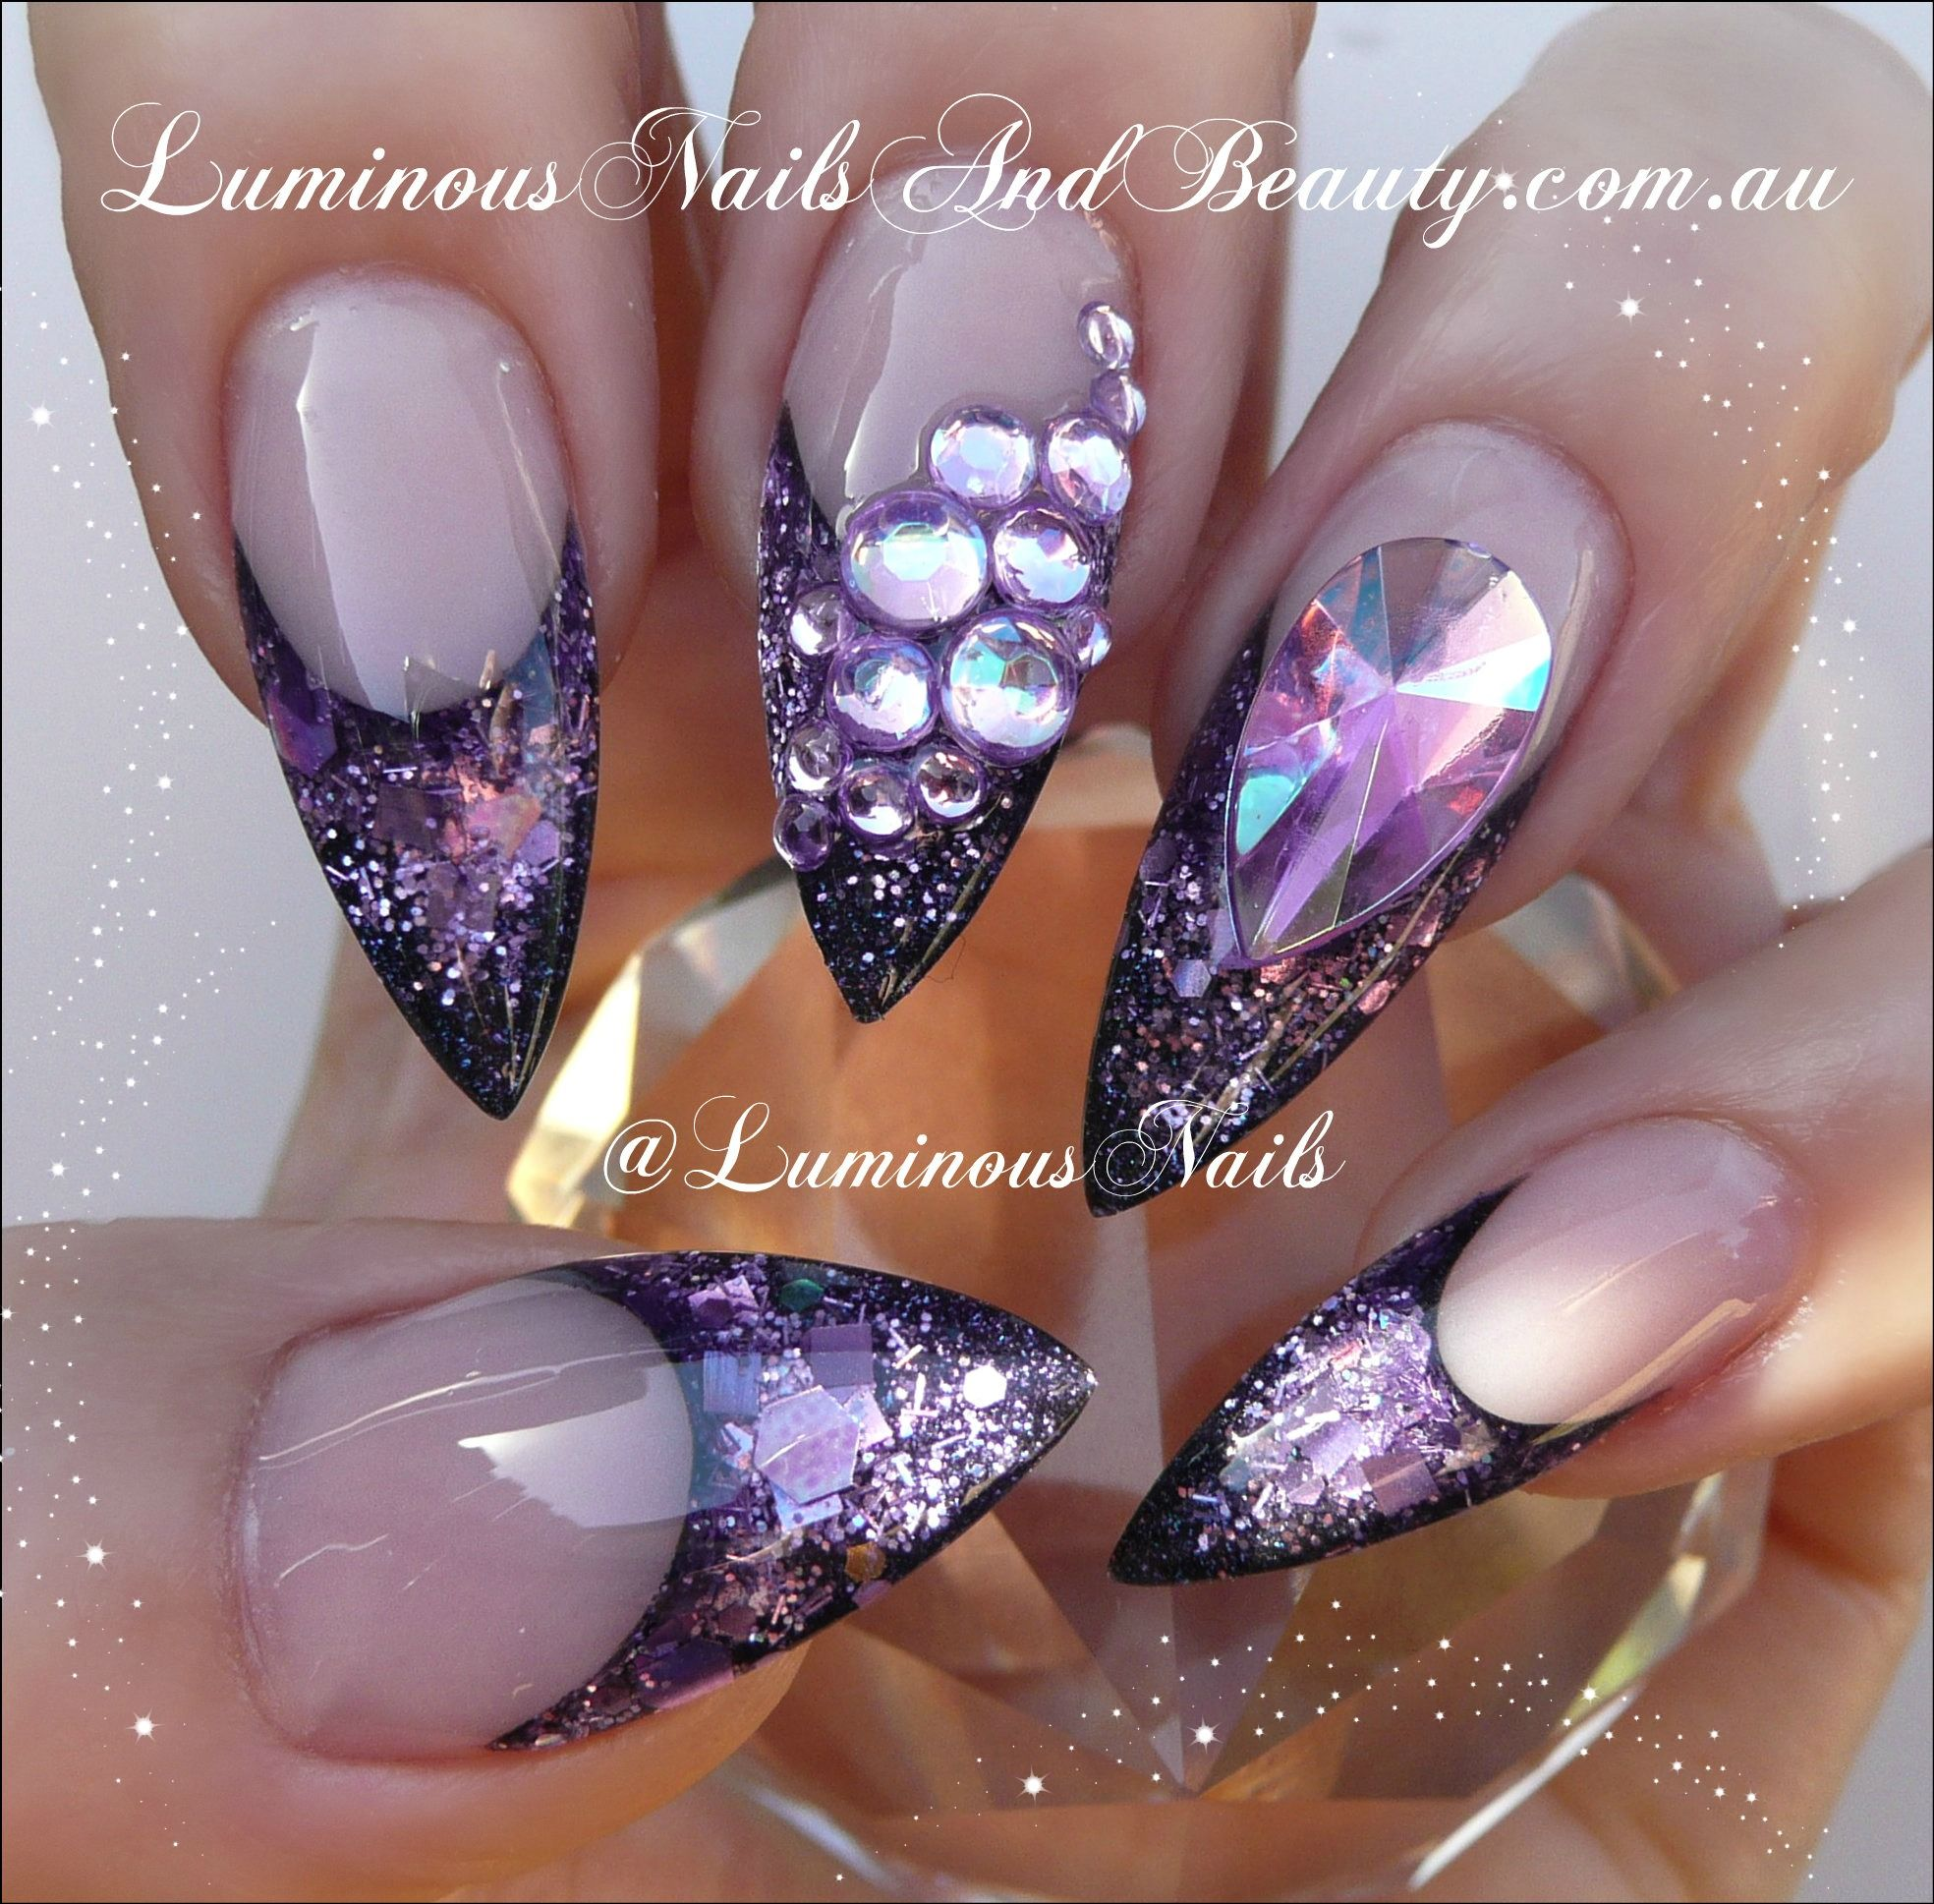 Sculptured Acrylic With Indigo Aquarius Lavender Violet Glitter Purple Crystals Pointy Nails Luminous Nails Purple Glitter Nails Nail Art Designs